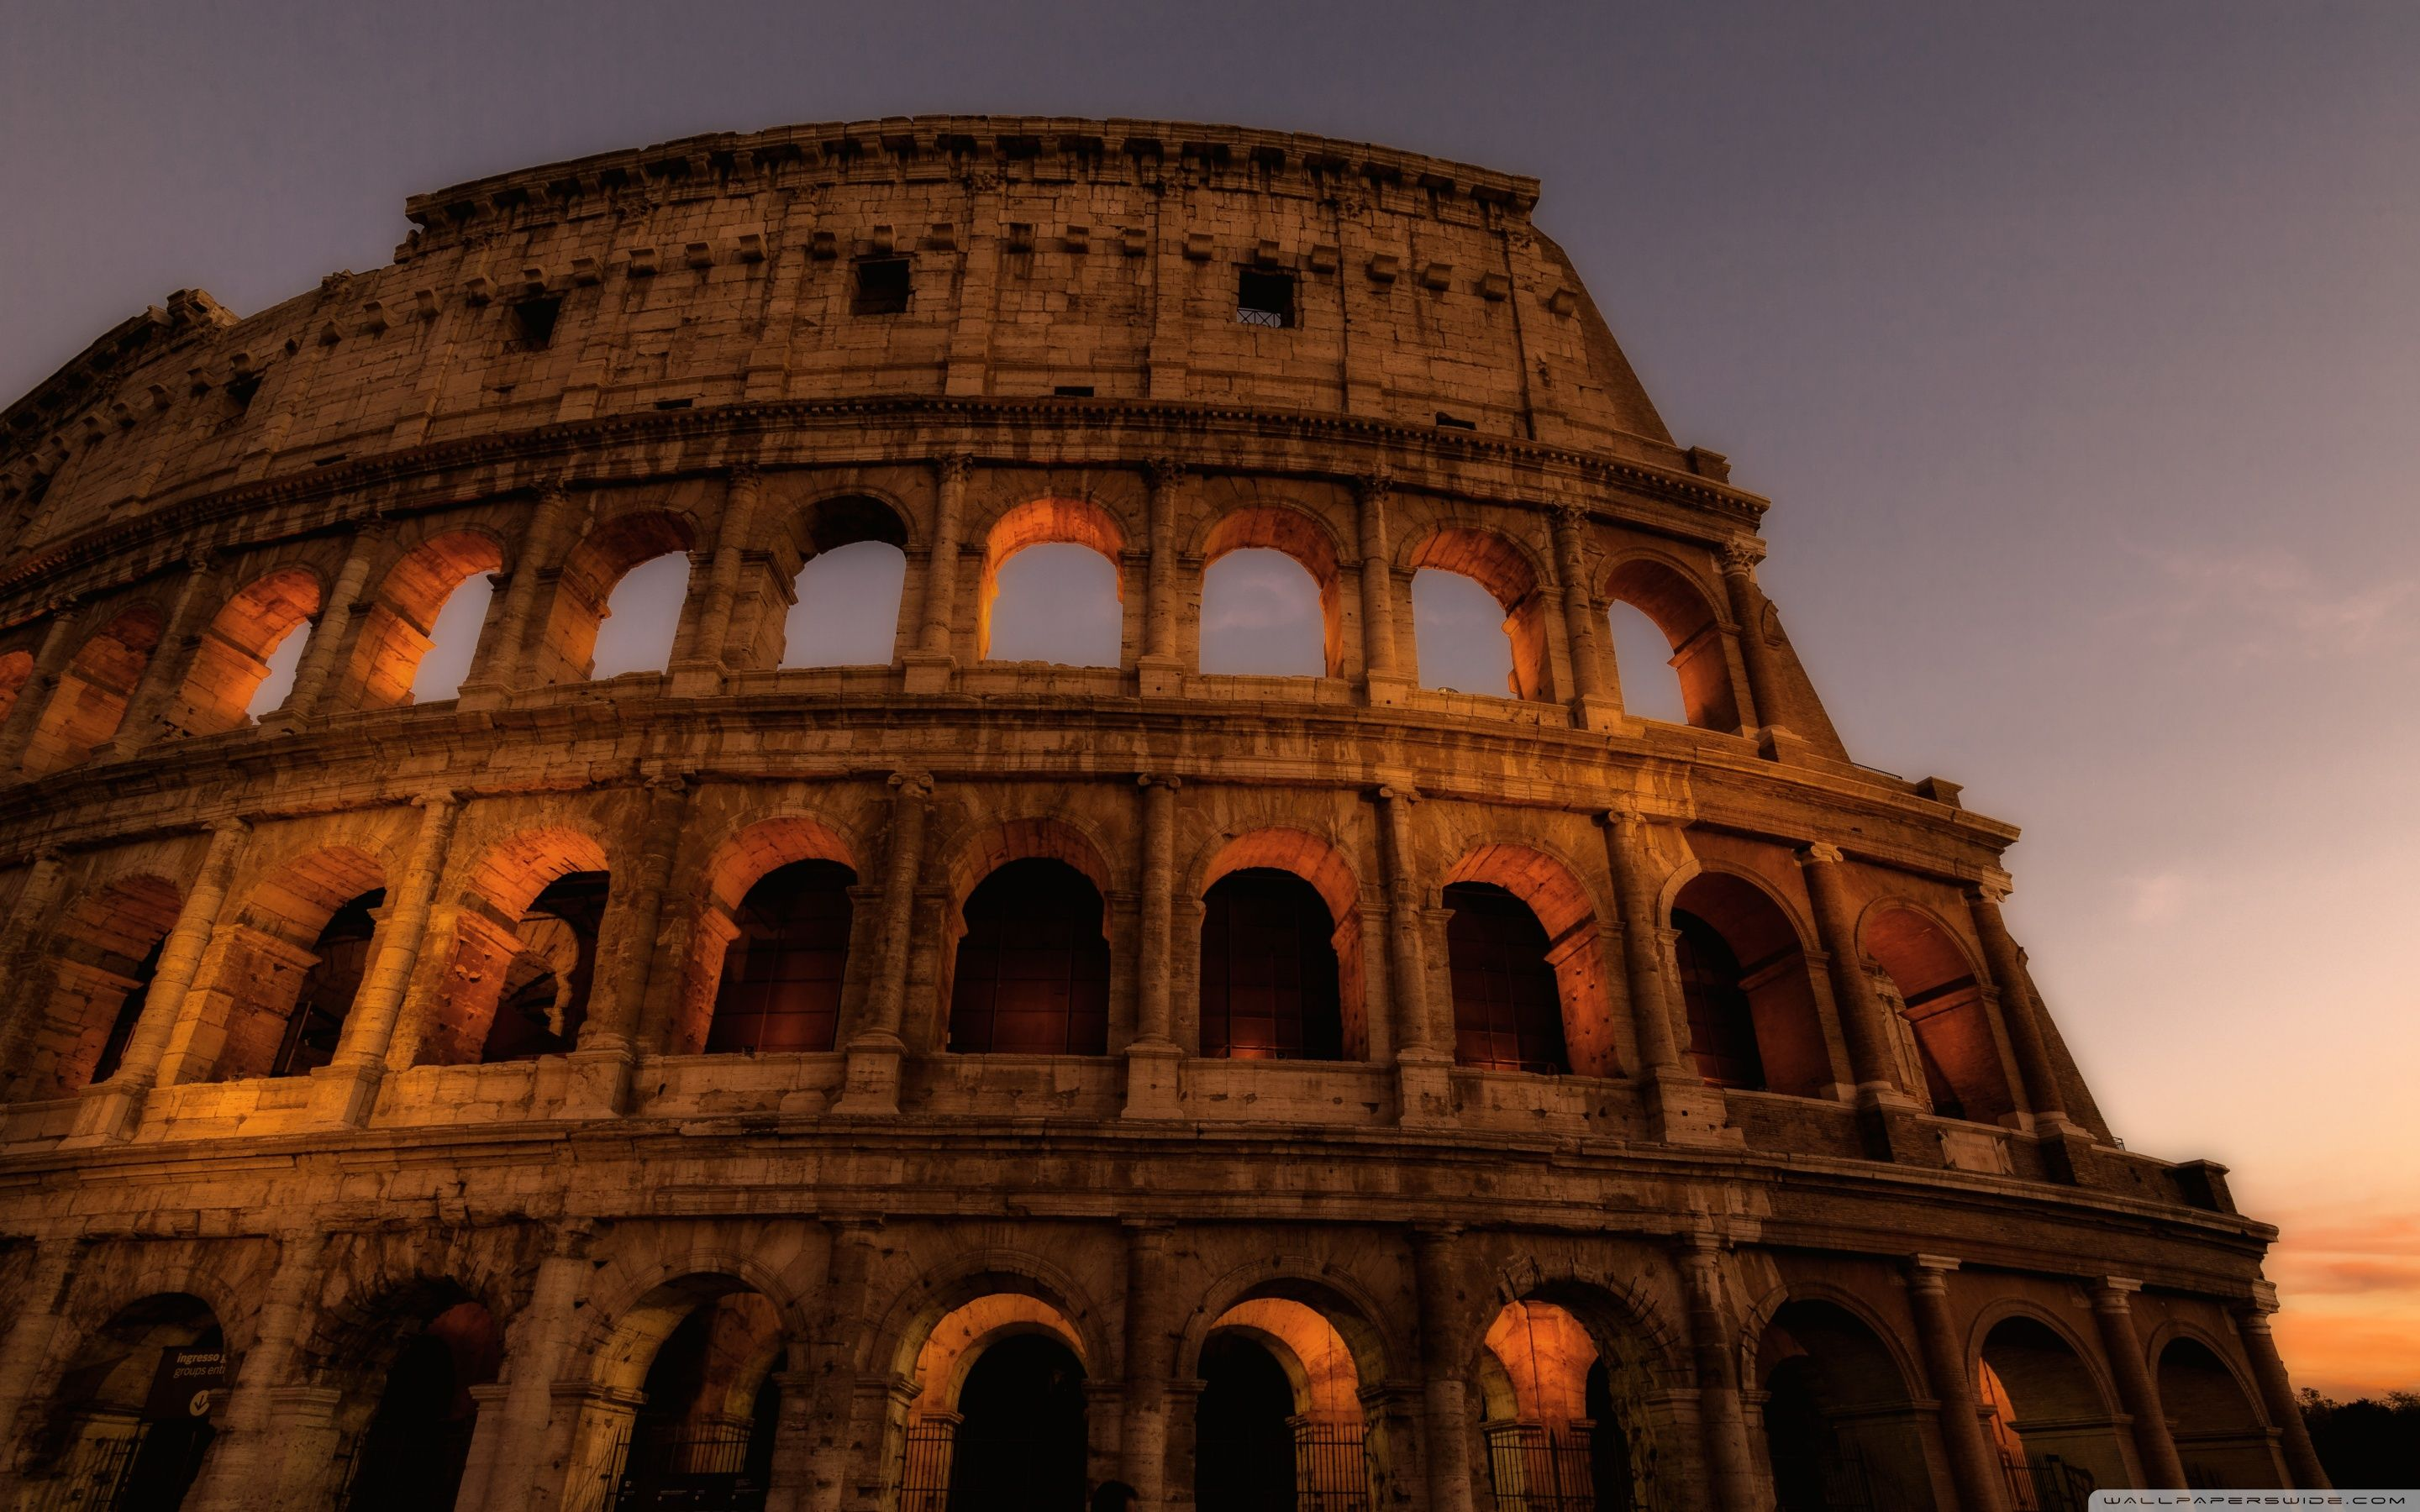 Amazing Wallpaper Night Colosseum - 820ba7052fdce3bf3450ddafc2996410  You Should Have.jpg